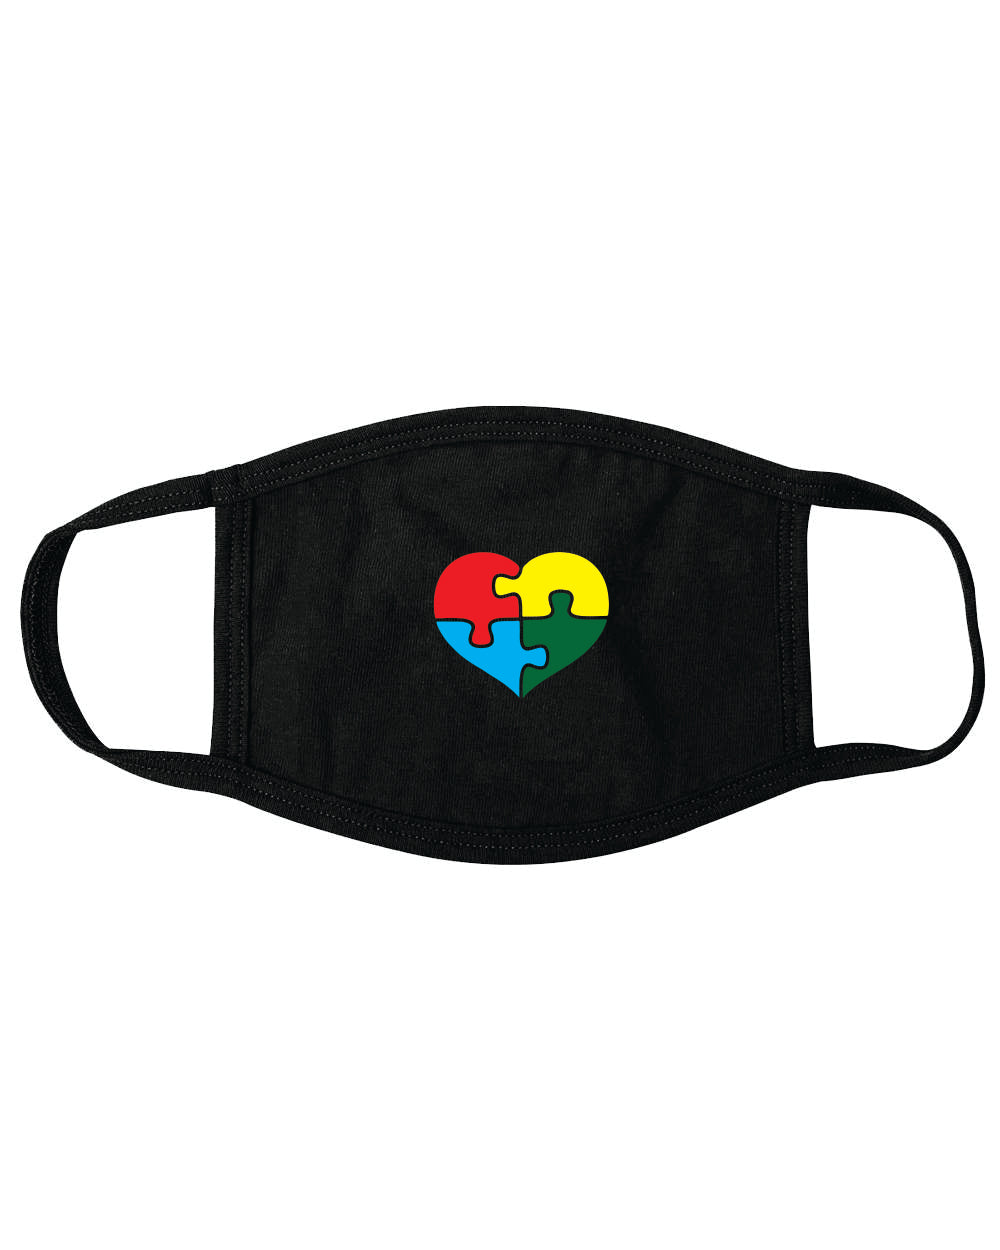 Autism Awareness MASK BLACK AUM2 - HEART